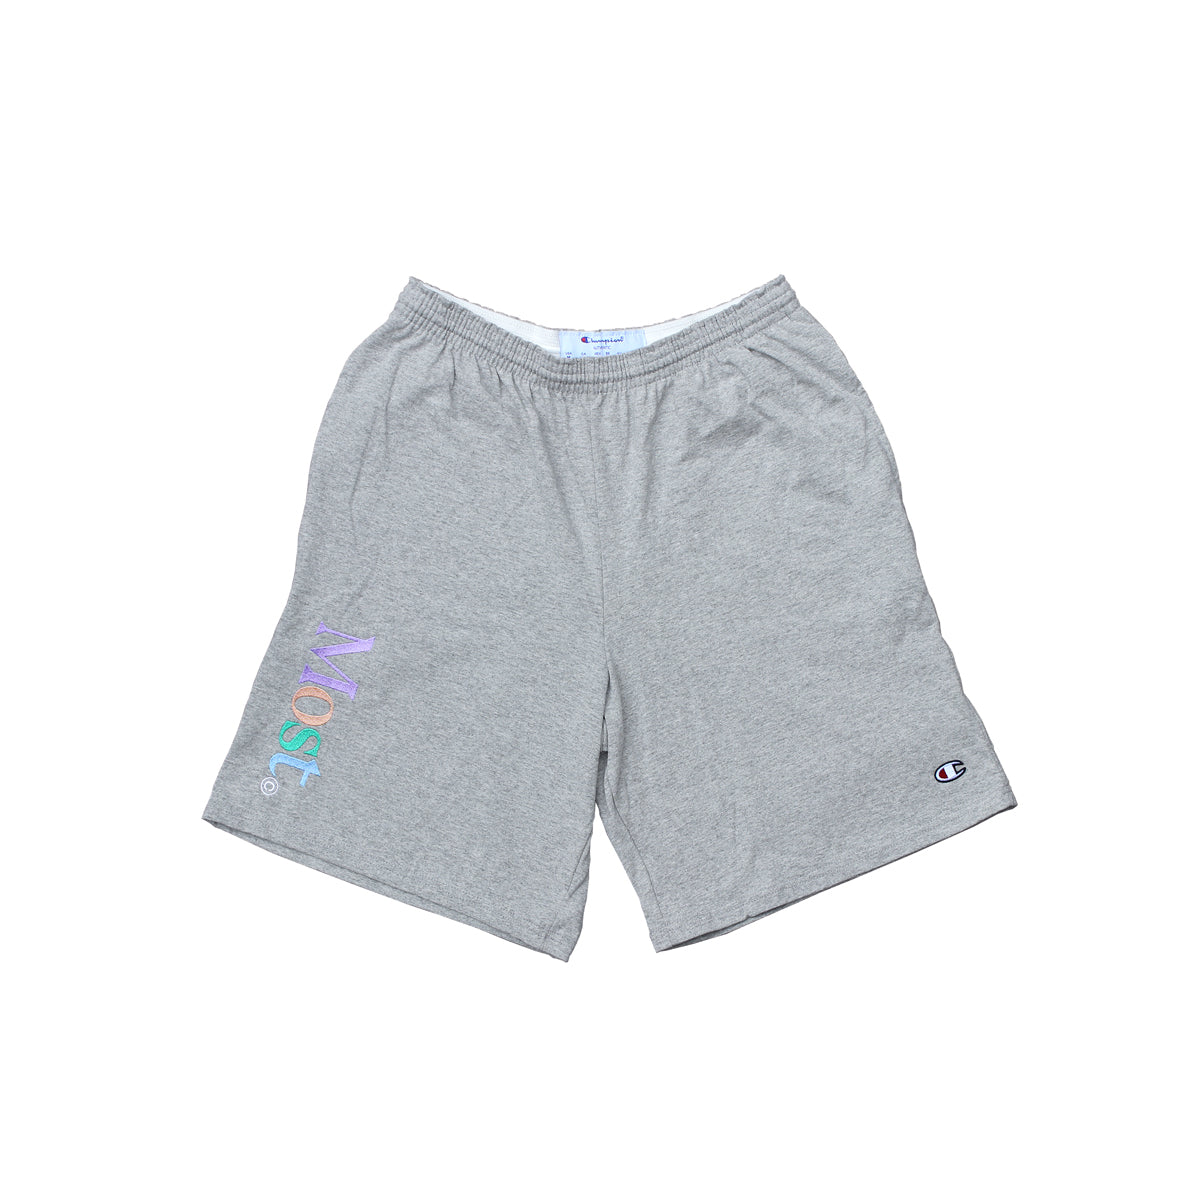 Multi Serif Champion® Sweatshort - Grey